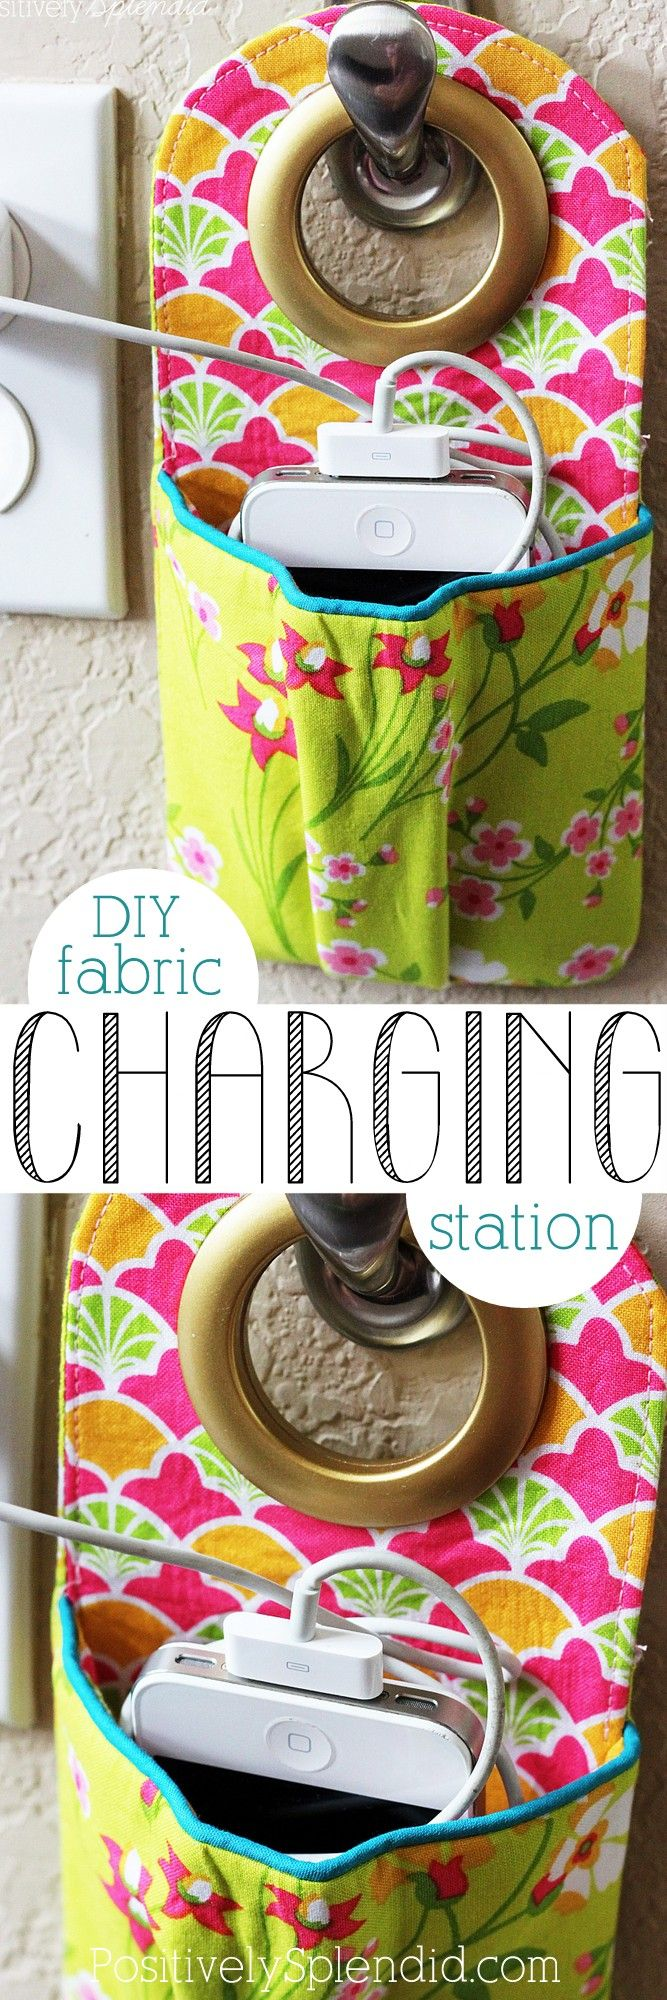 Idee Laden Diy Fabric Phone Charging Station Cool Fonts Pinterest